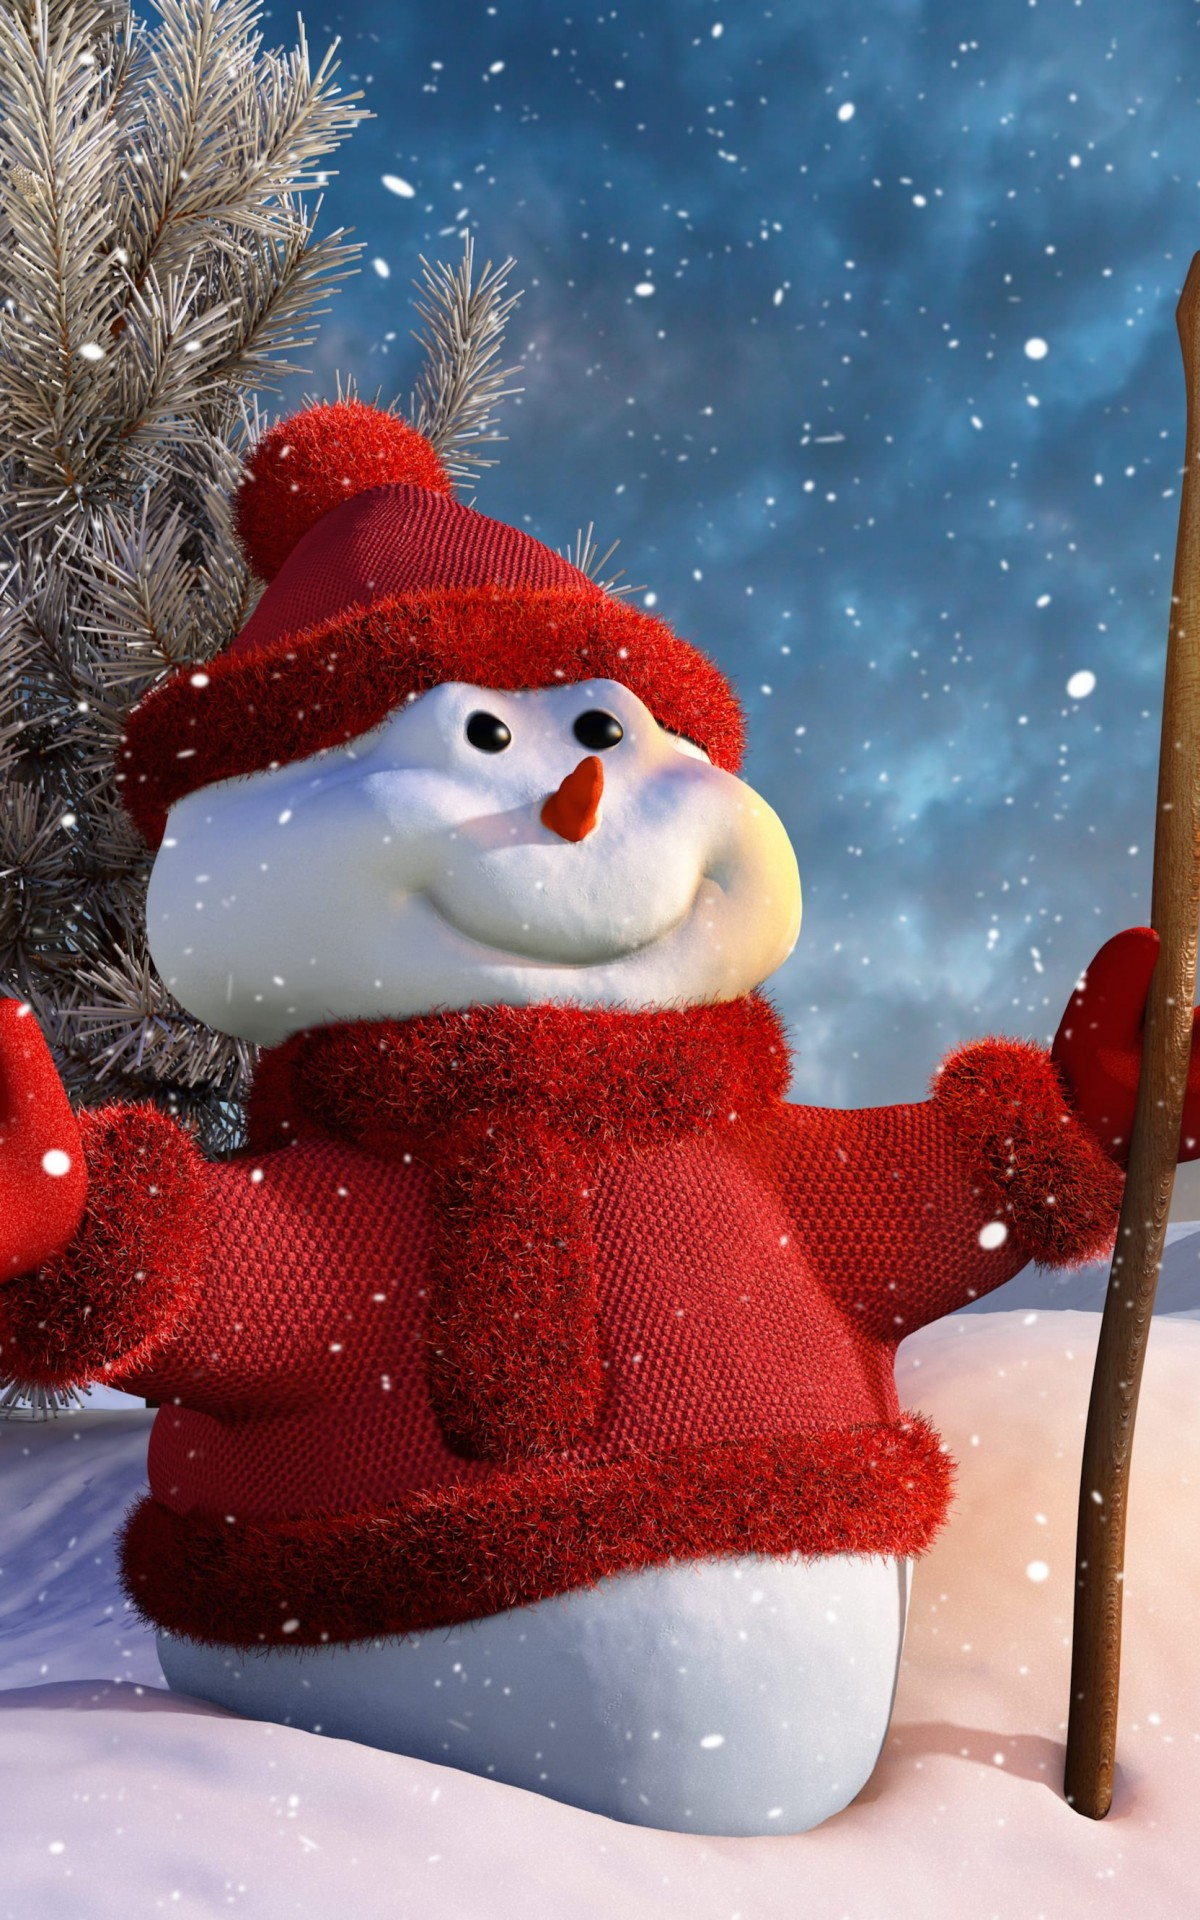 Christmas Snowman HD wallpaper for Kindle Fire HDX   HDwallpapersnet 1200x1920